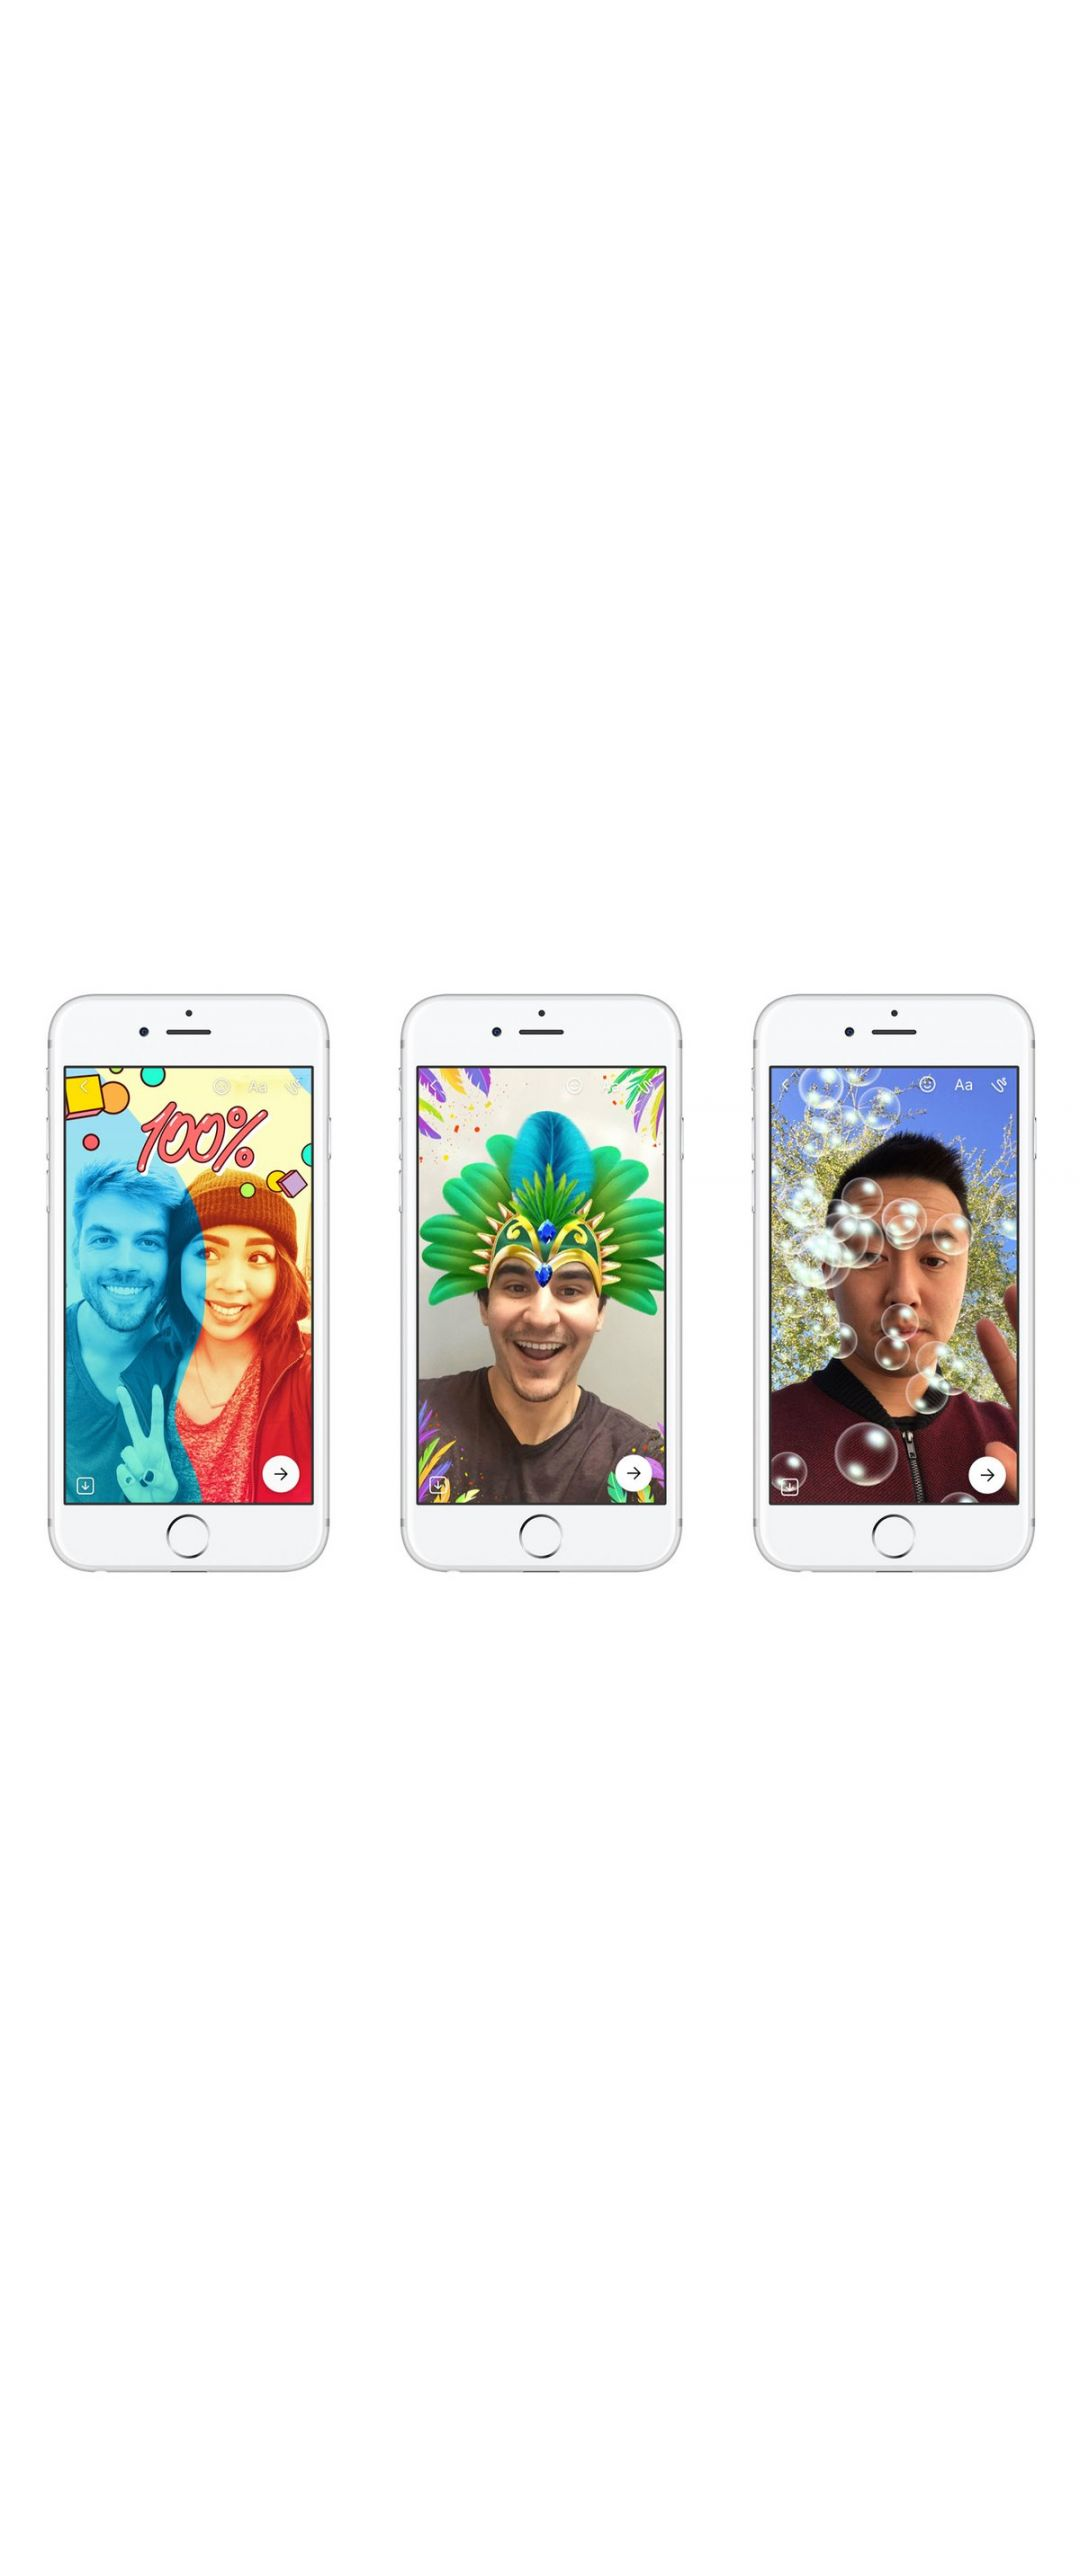 Facebook Messenger lanza su propio clon de Snapchat Stories